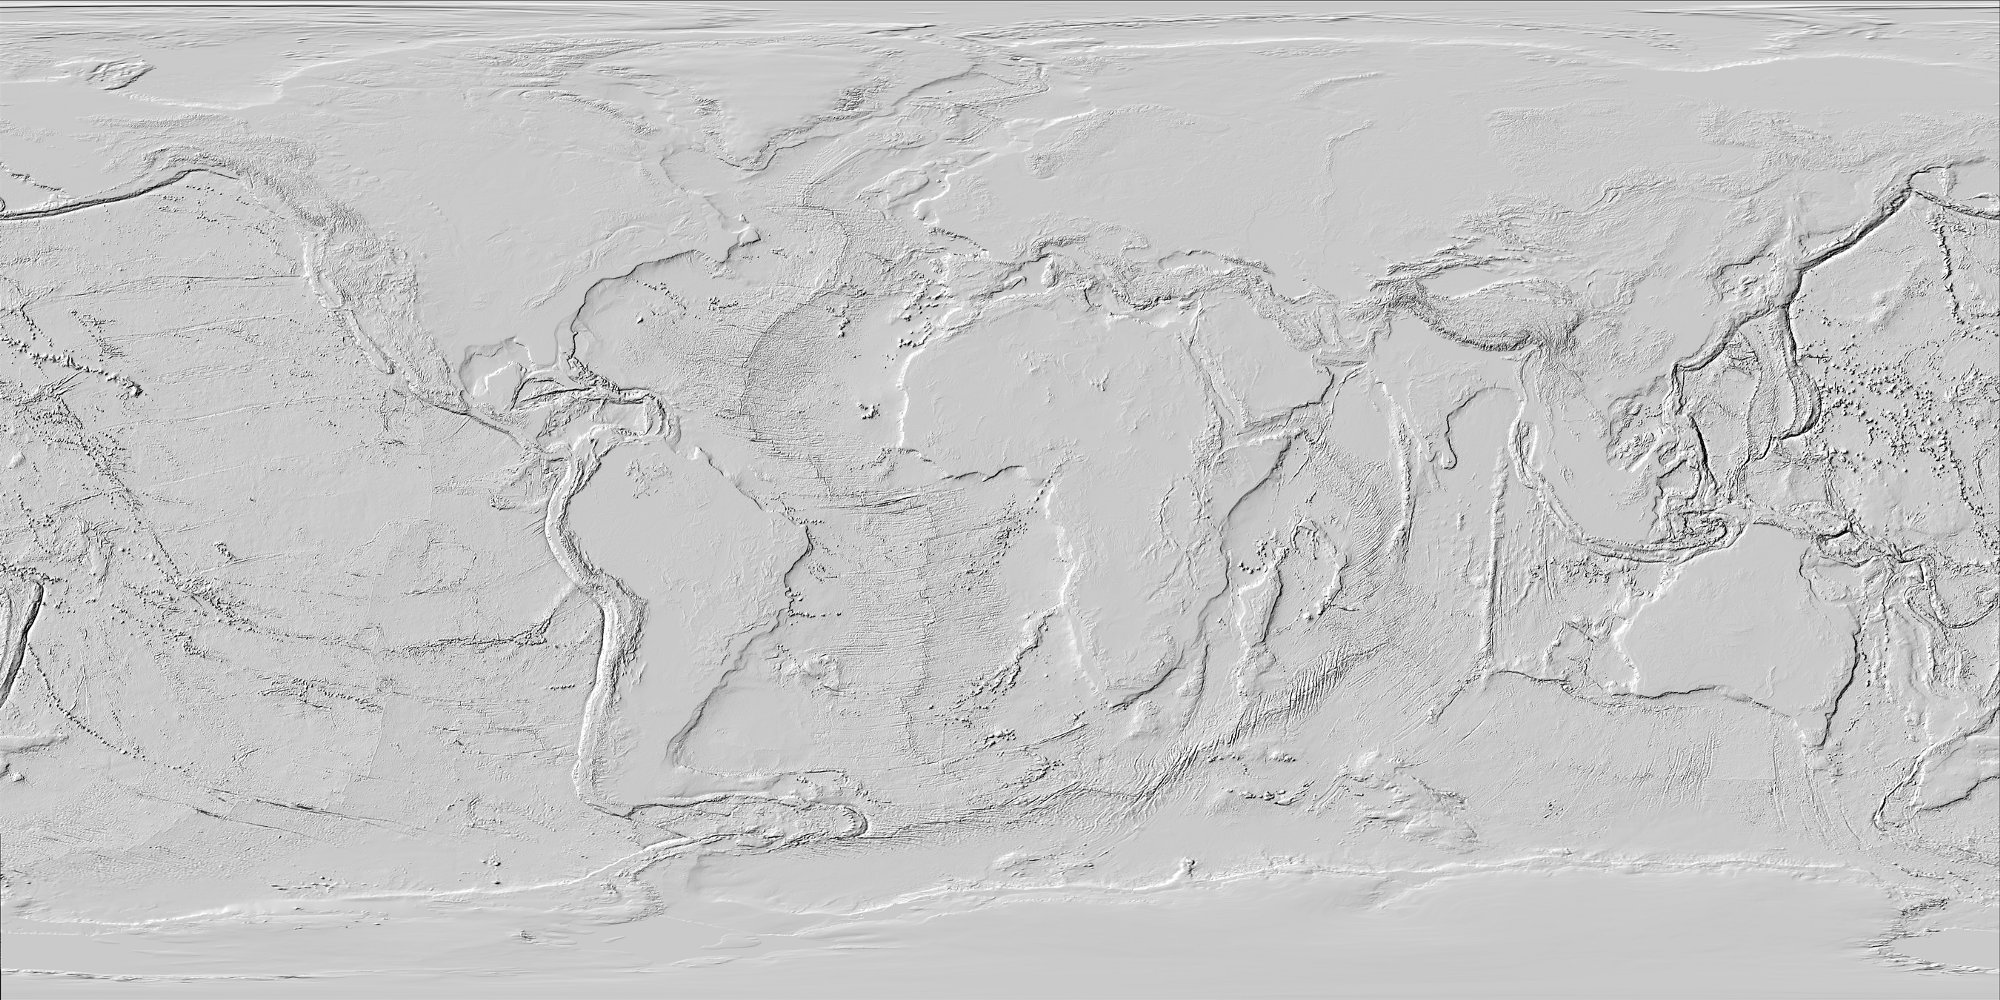 Creating A Giant 3d Bathymetric Map Out Of 2d Data For